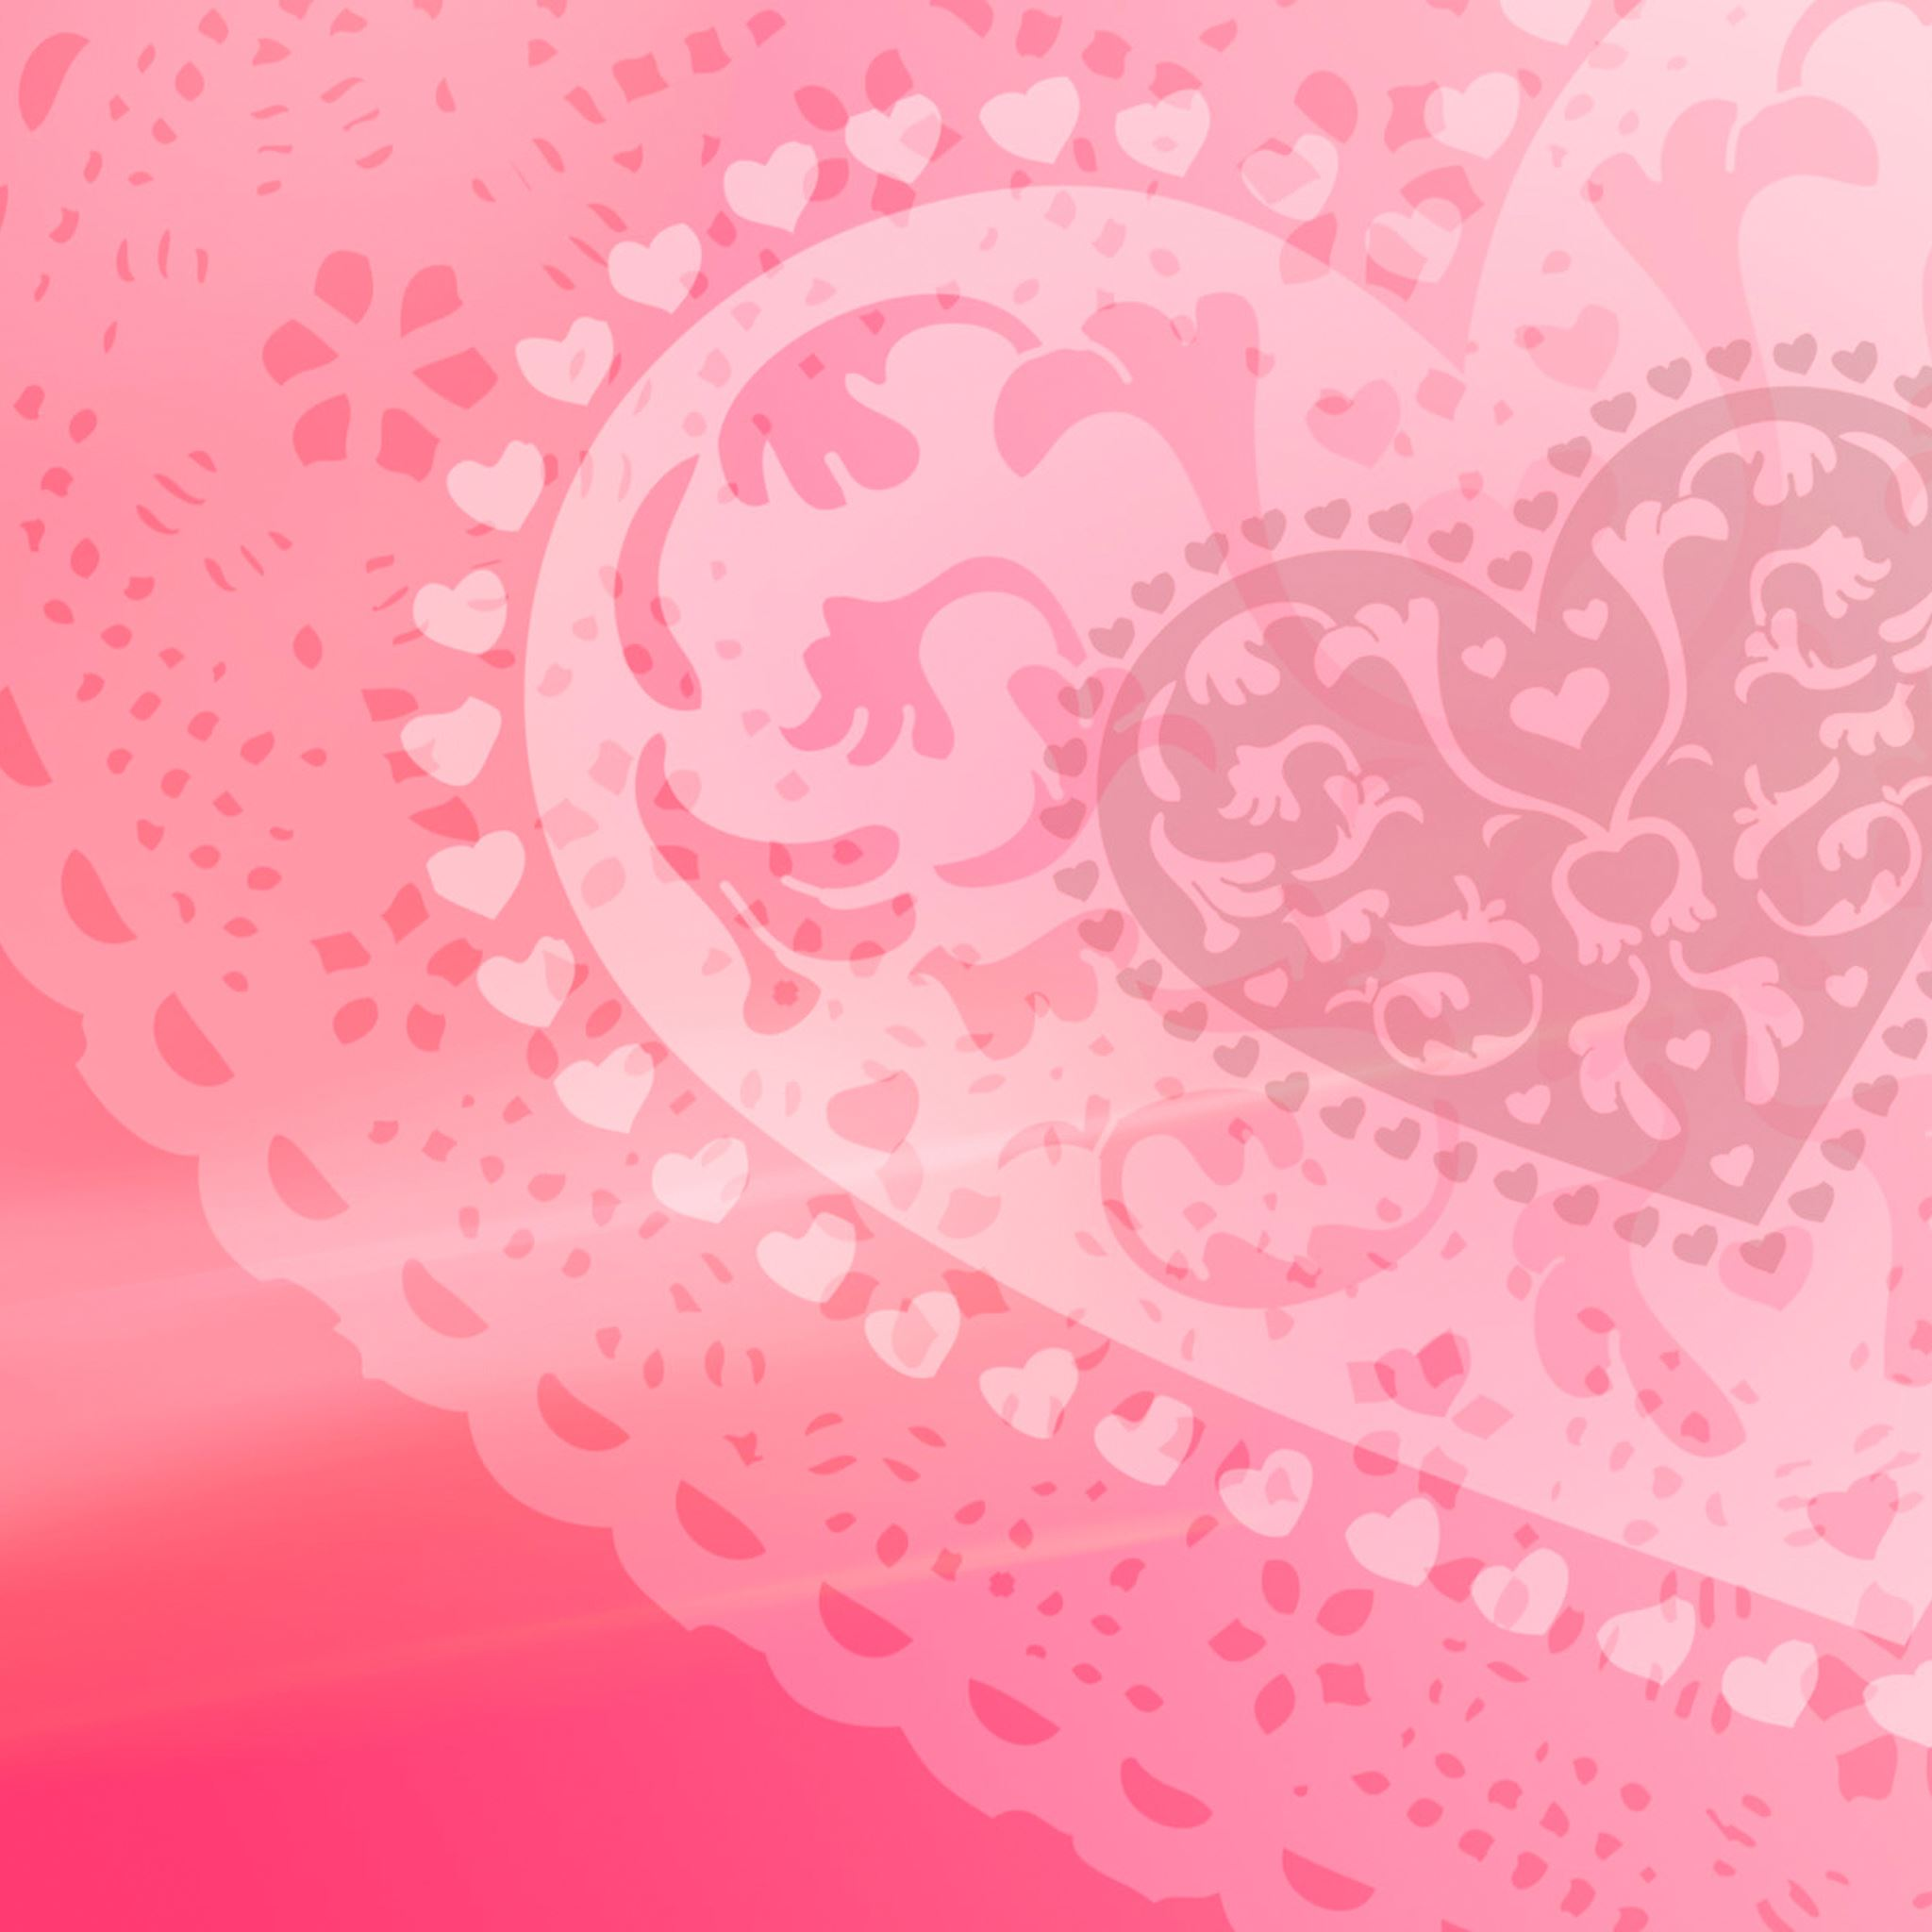 Pink Heart iPad Air wallpaper